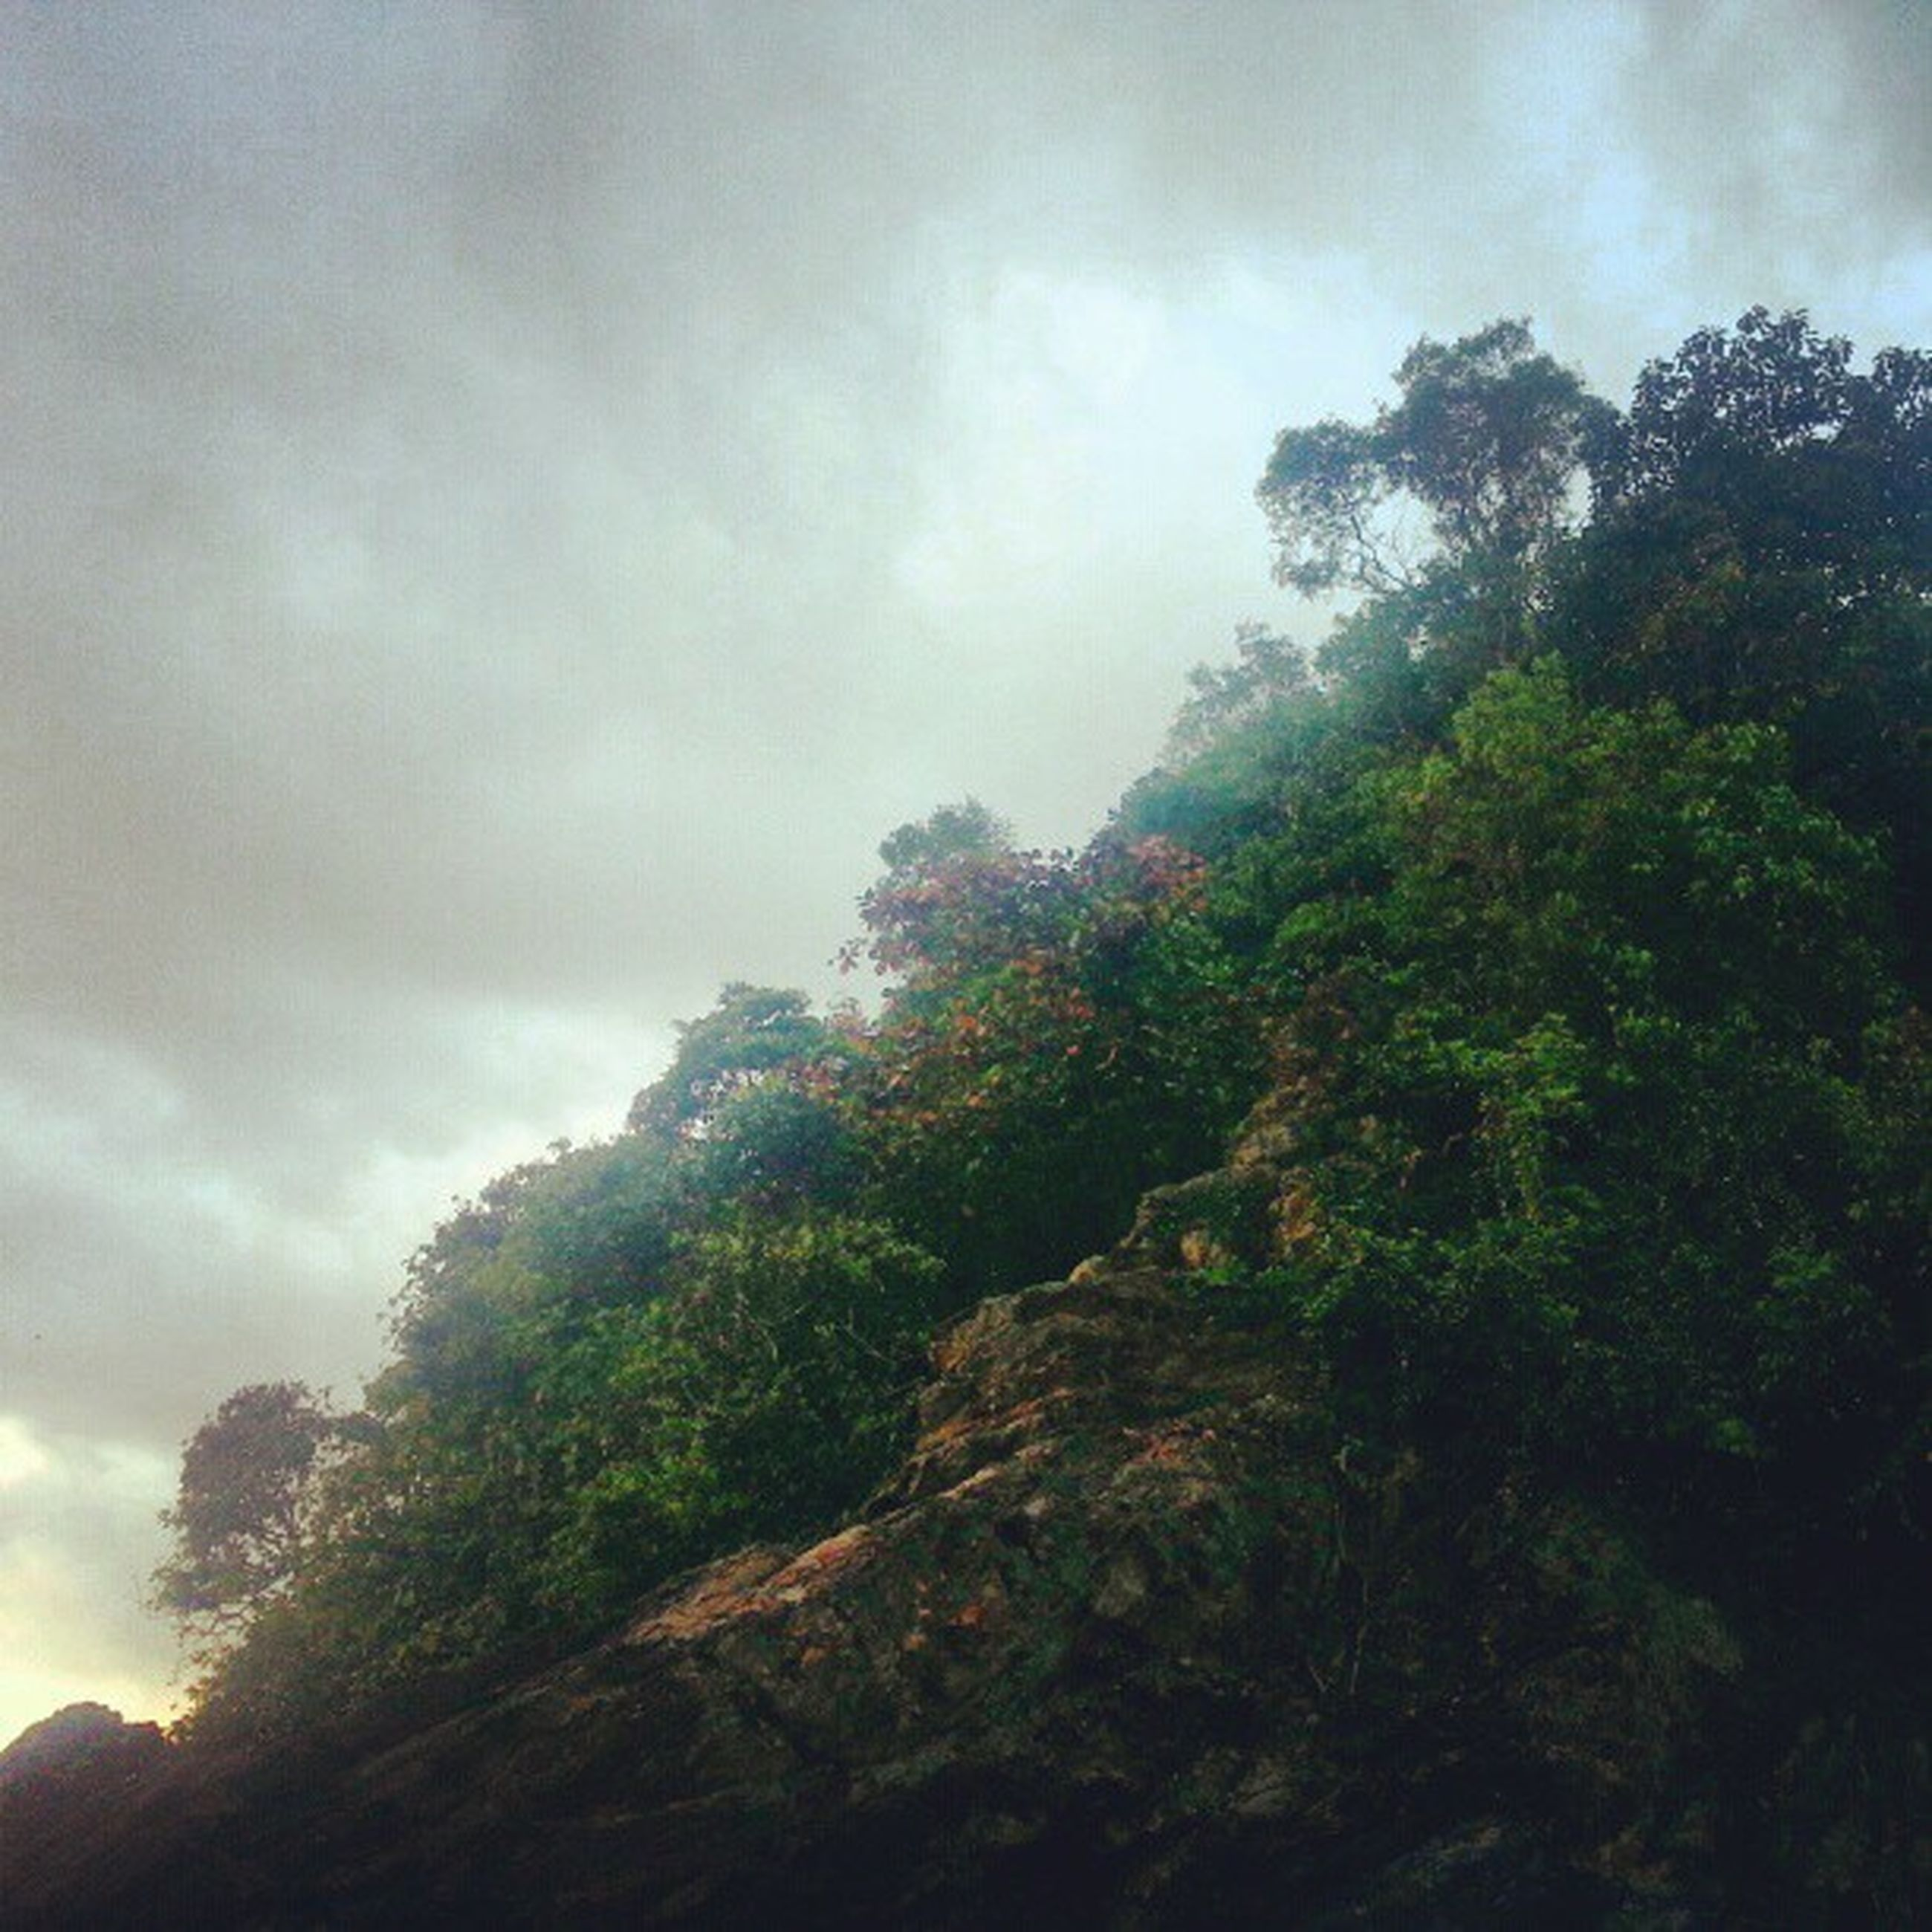 tree, sky, low angle view, cloud - sky, tranquility, growth, nature, tranquil scene, cloudy, beauty in nature, scenics, cloud, green color, day, outdoors, branch, no people, non-urban scene, idyllic, forest